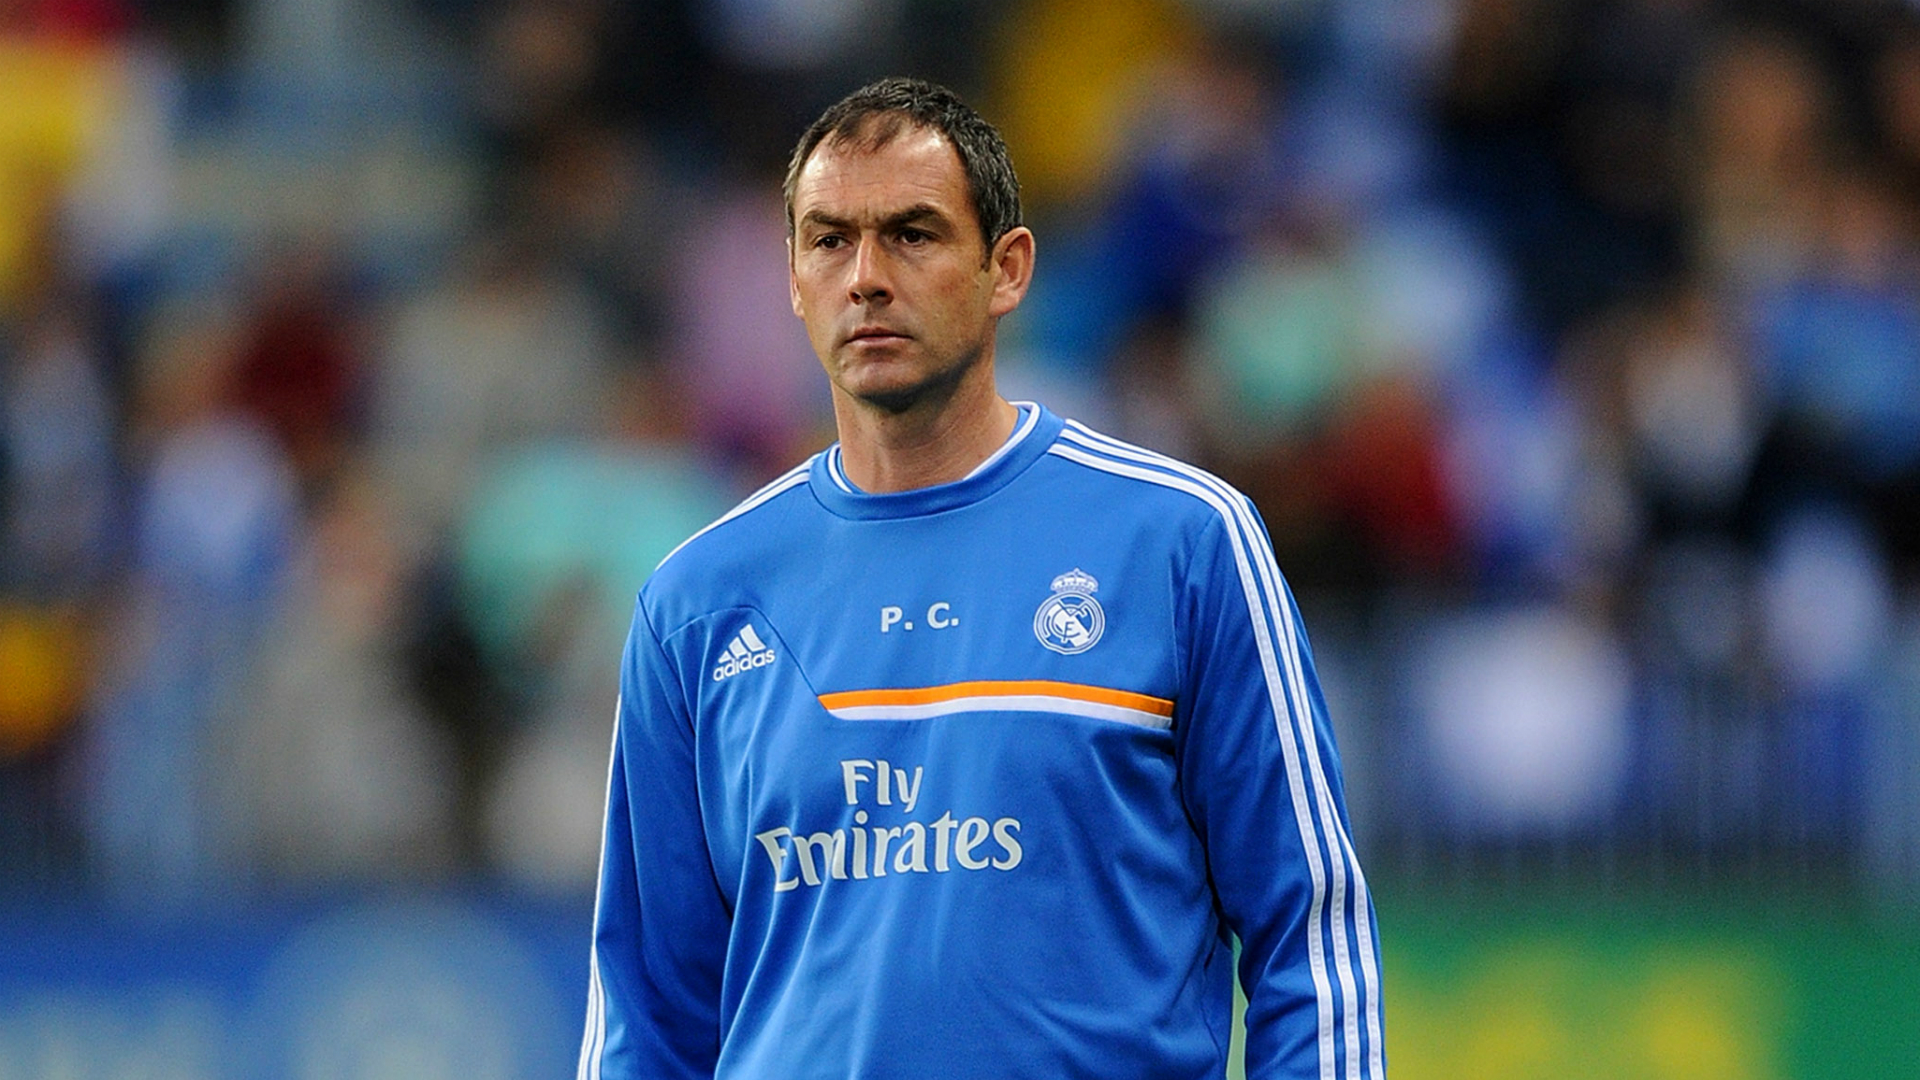 [Image: paul-clement-real-madrid_1q0g0x1nunln71f...1522504715]